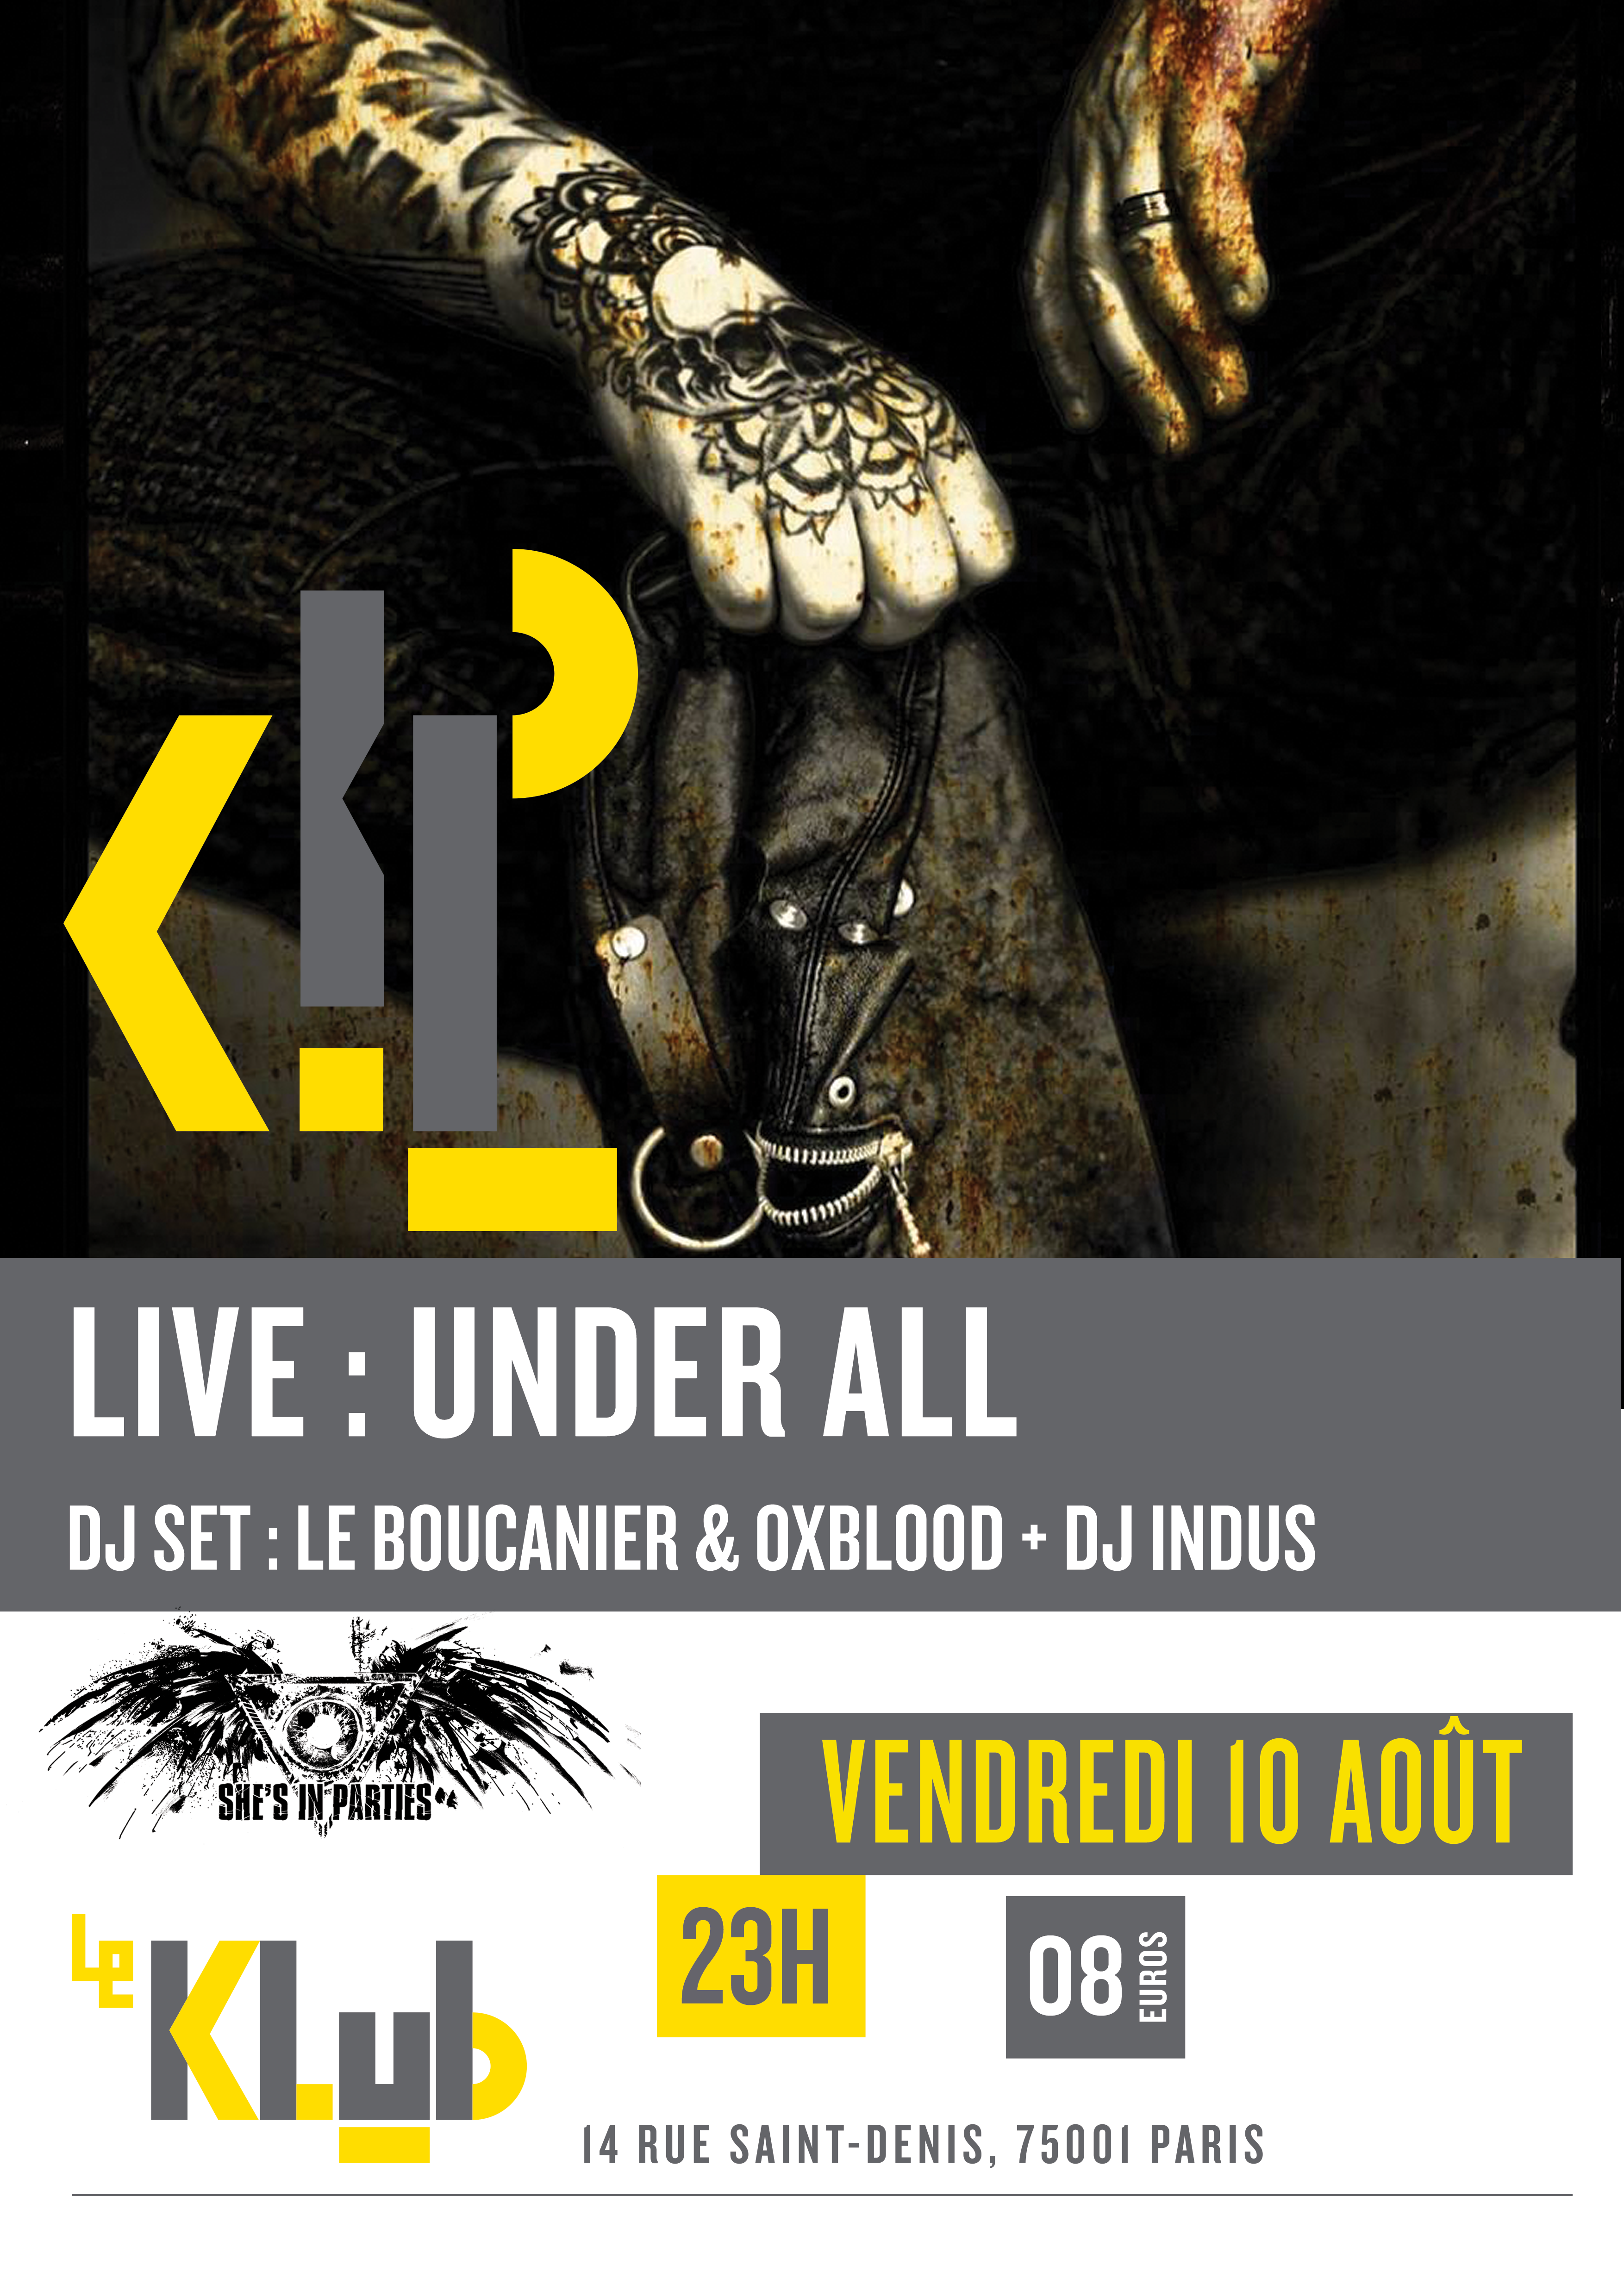 SUMMER SHE'S IN PARTIES #3 ■ 10.08 ■ LE KLUB